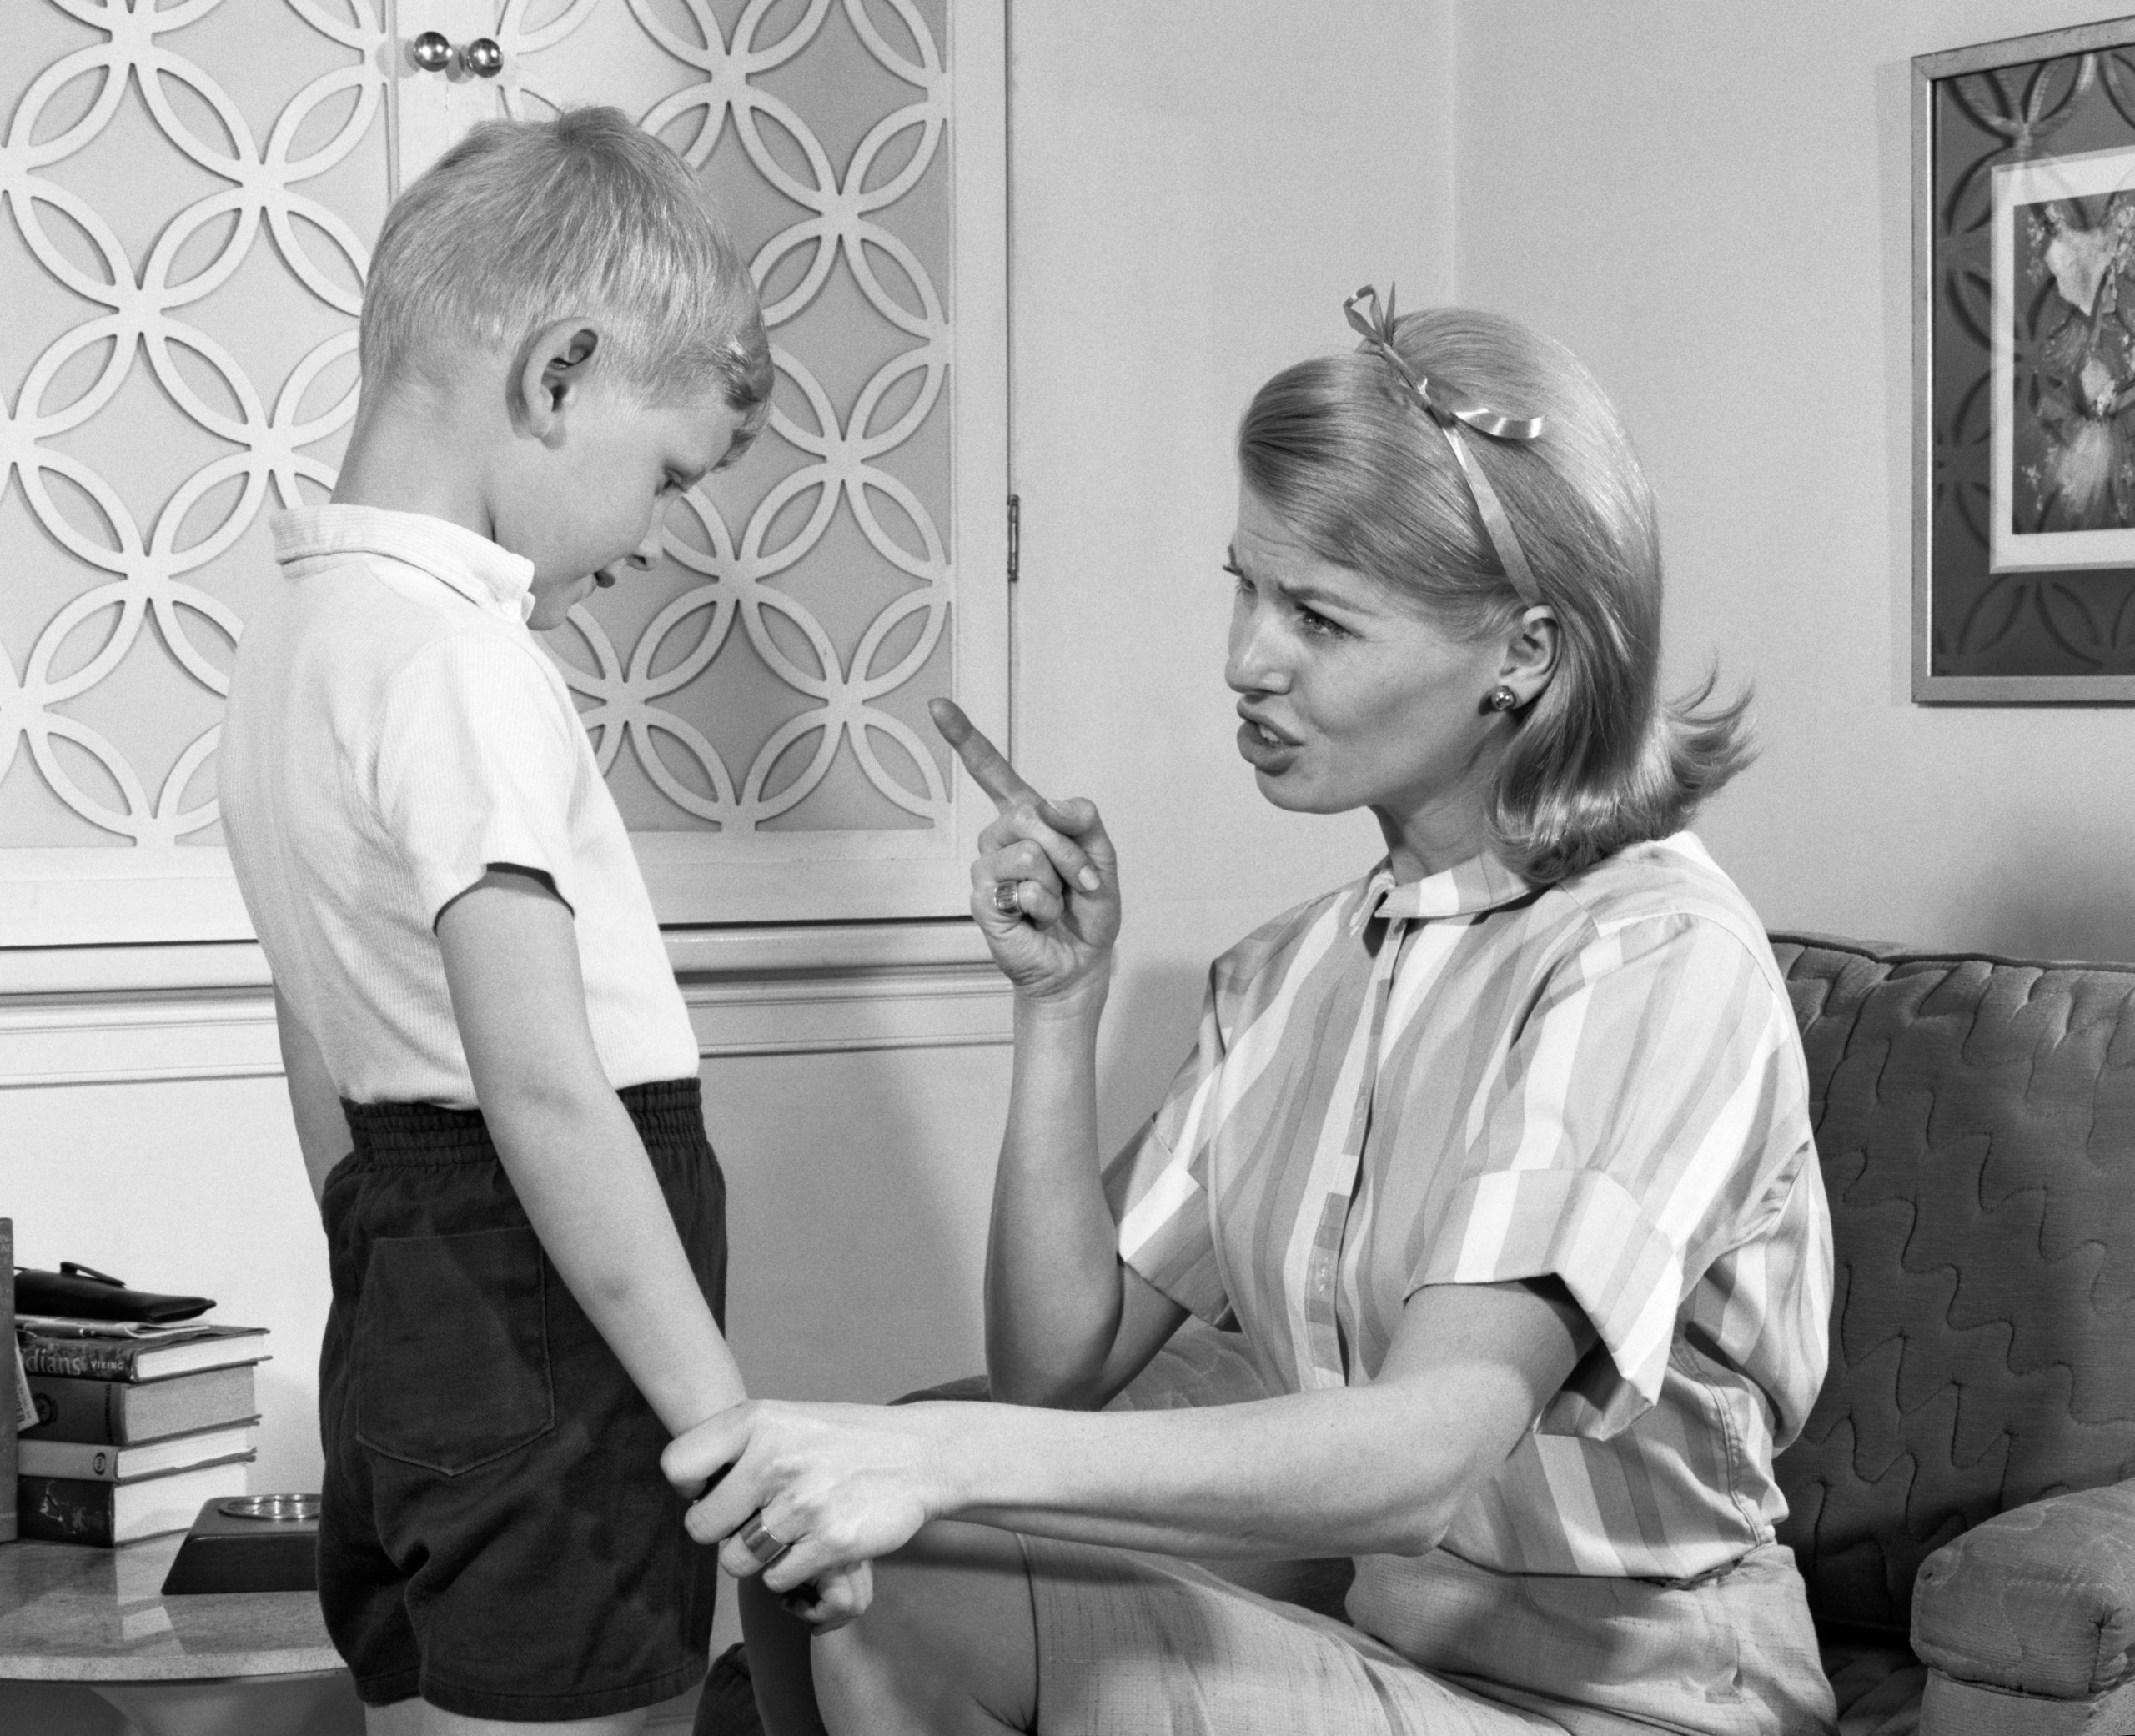 The most common WHITE LIES that parents tell their kids